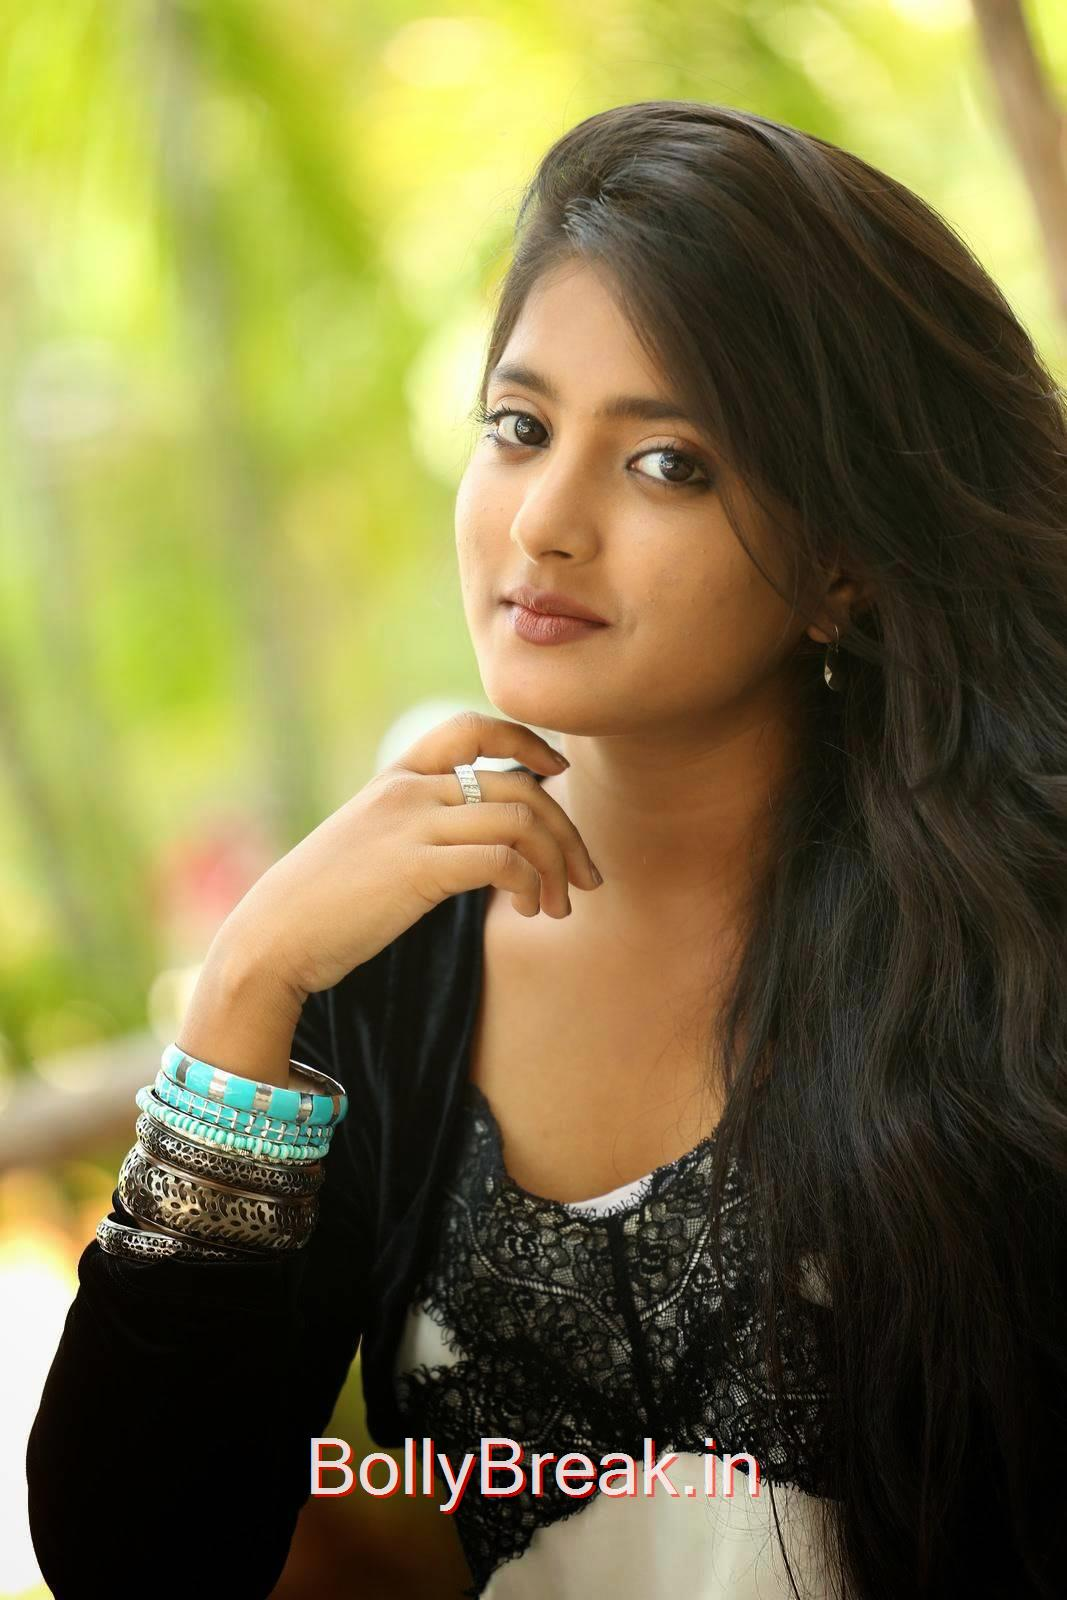 Ulka Gupta Unseen Stills, Cute, Sweet, Innocent Indian Actress Ulka Gupta hot HD Photo Gallery Pics